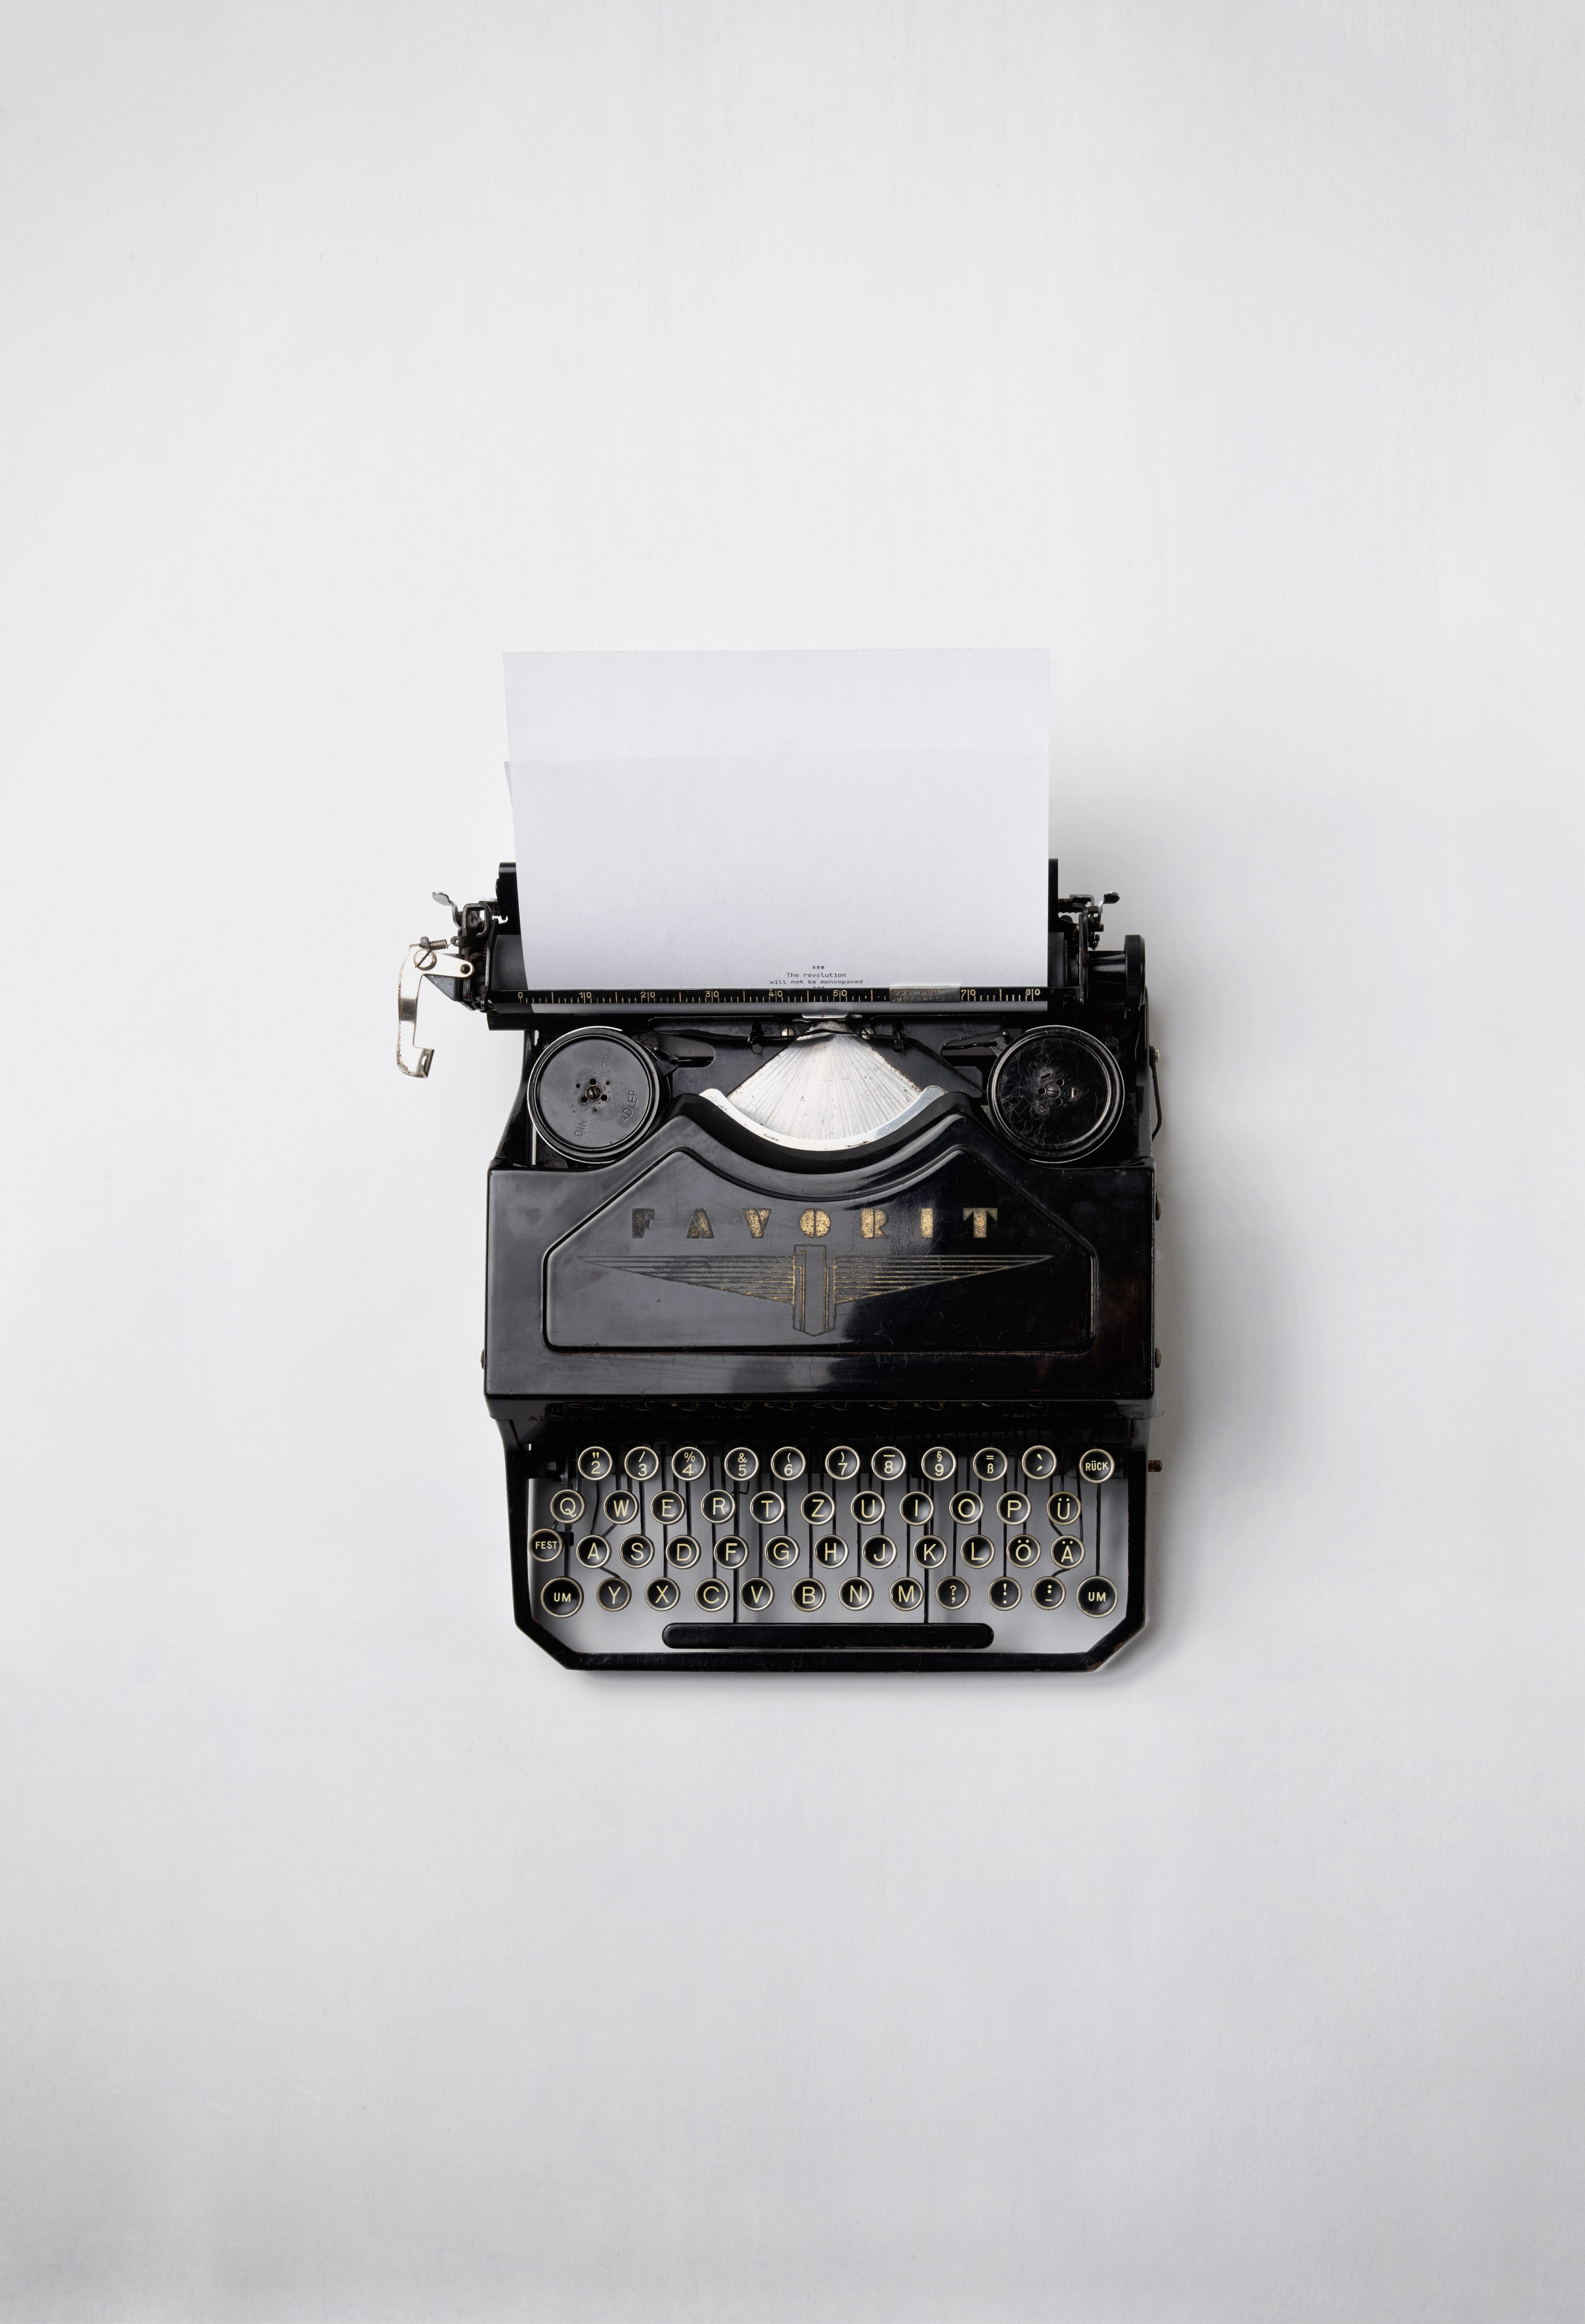 A type writer represents being ready to go to work as a freelance content creator.